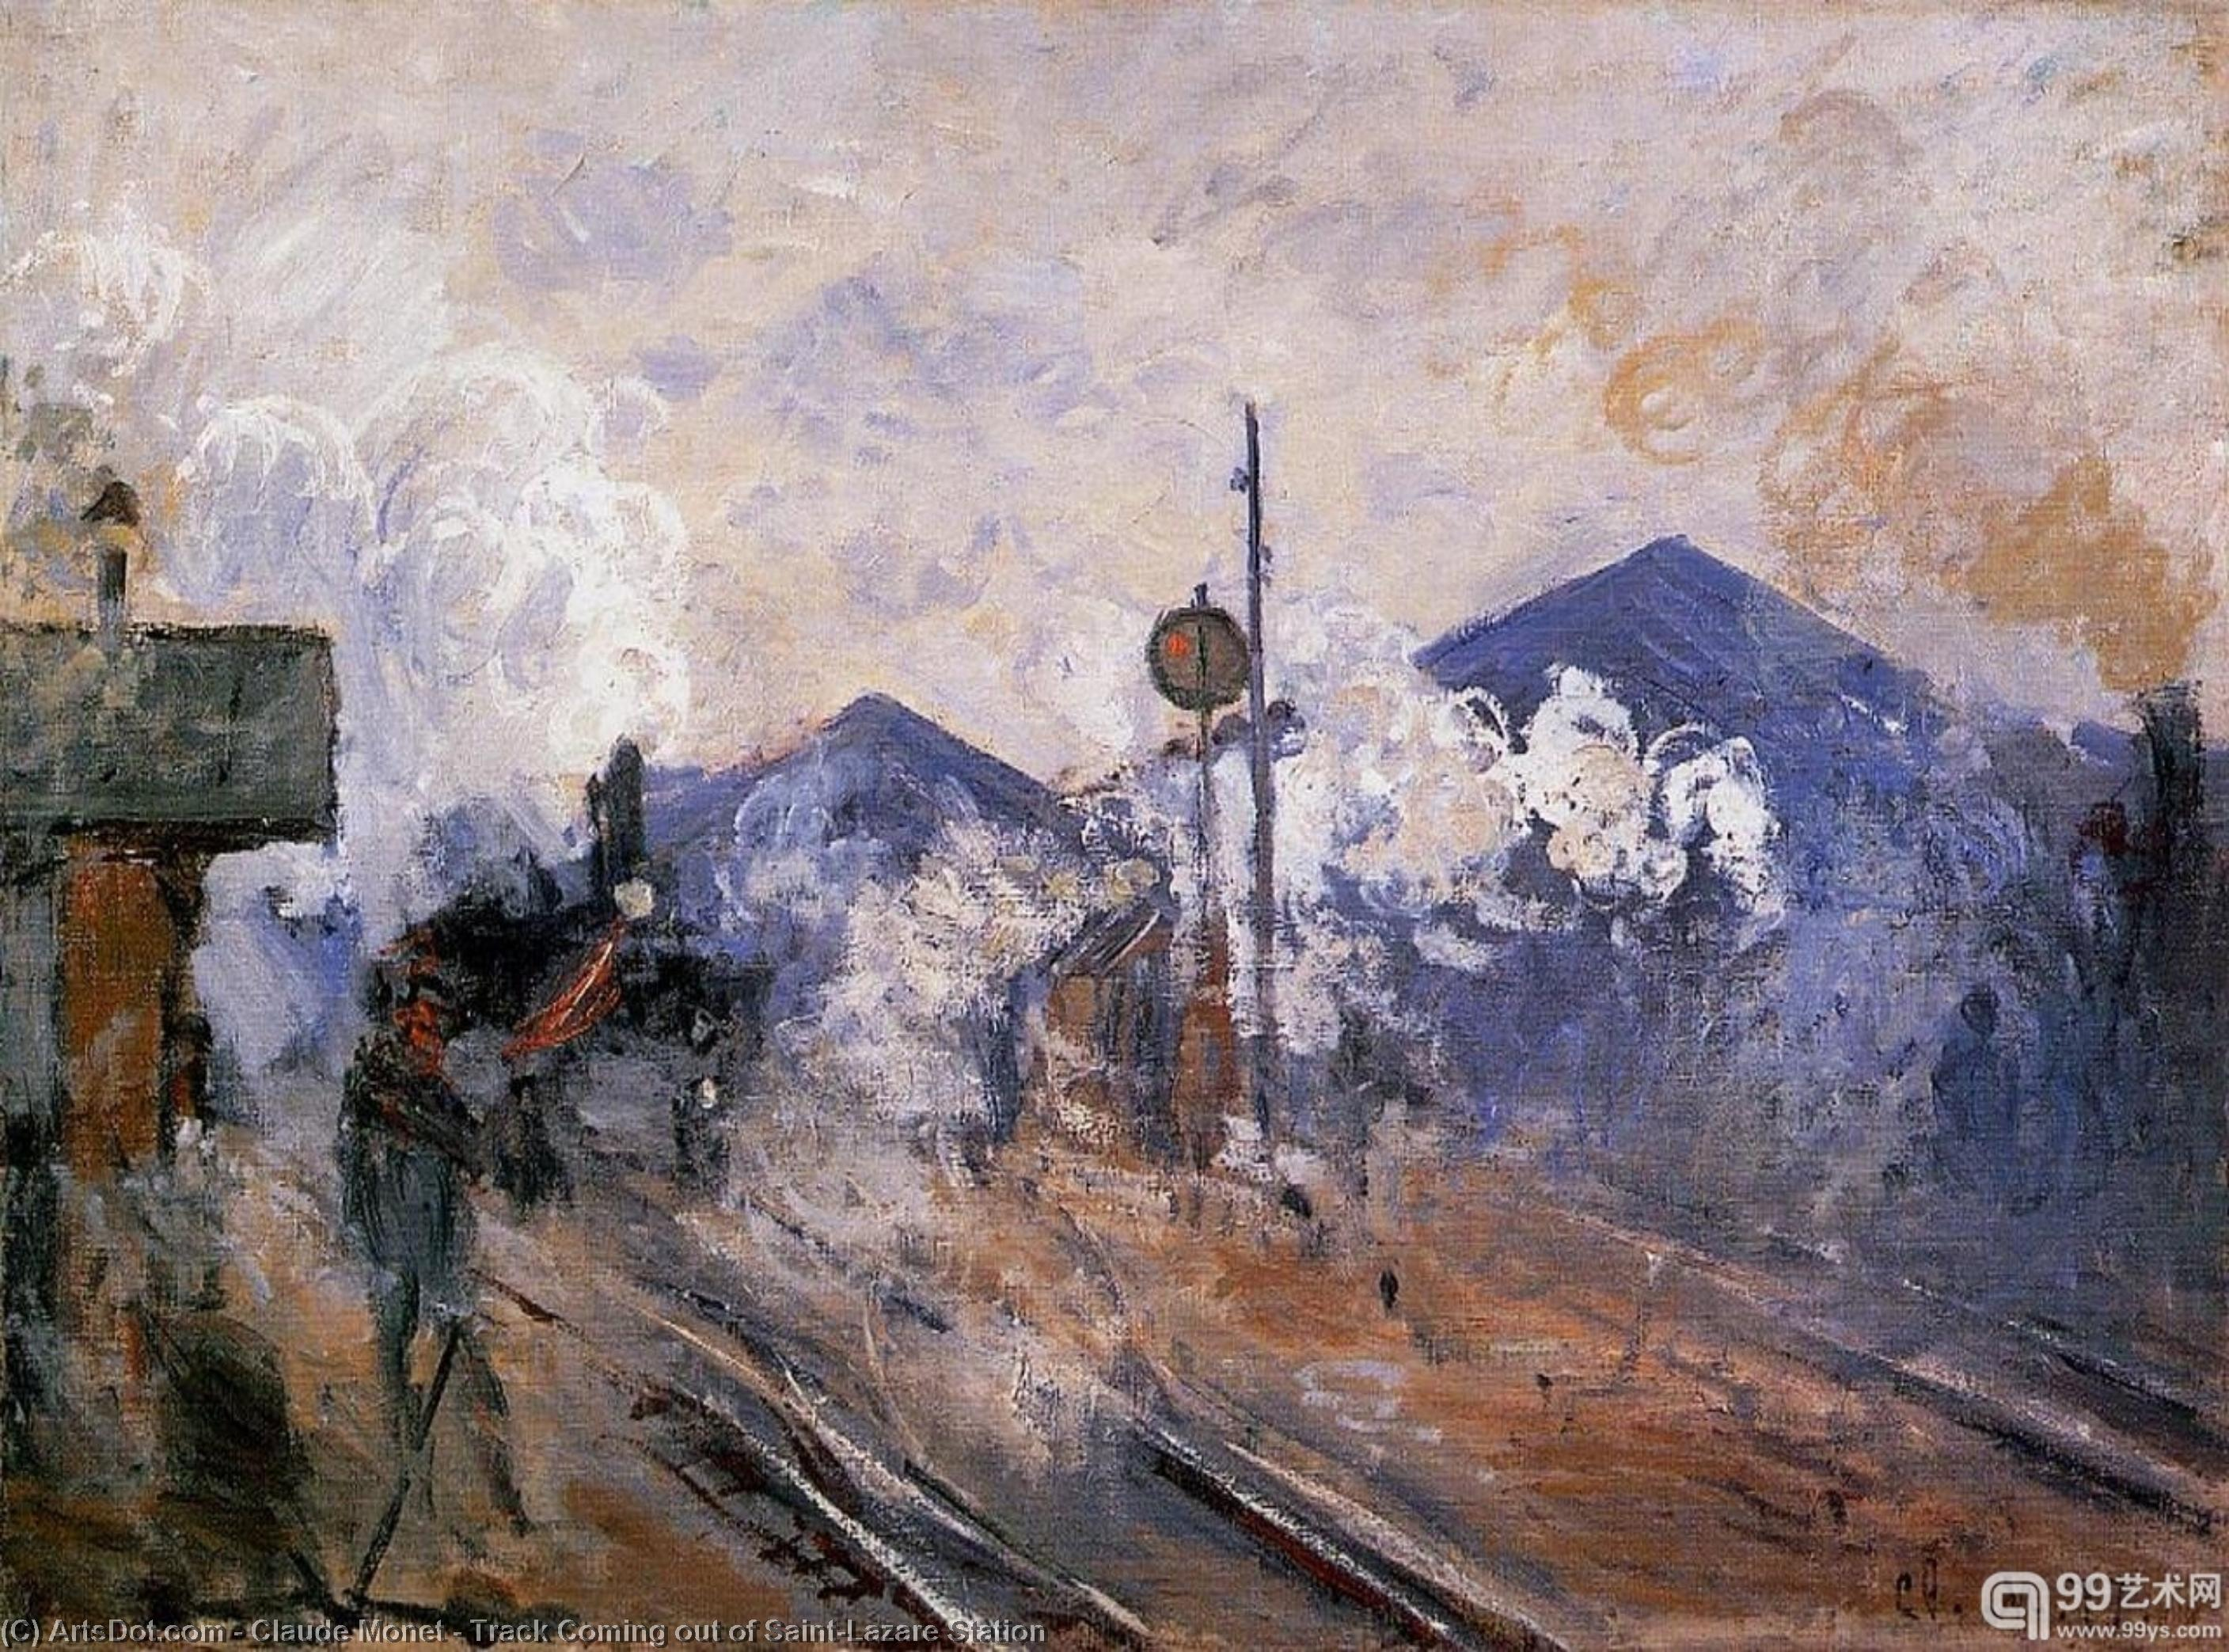 Track Coming out of Saint-Lazare Station, 1877 by Claude Monet (1840-1926, France) | Reproductions Claude Monet | ArtsDot.com